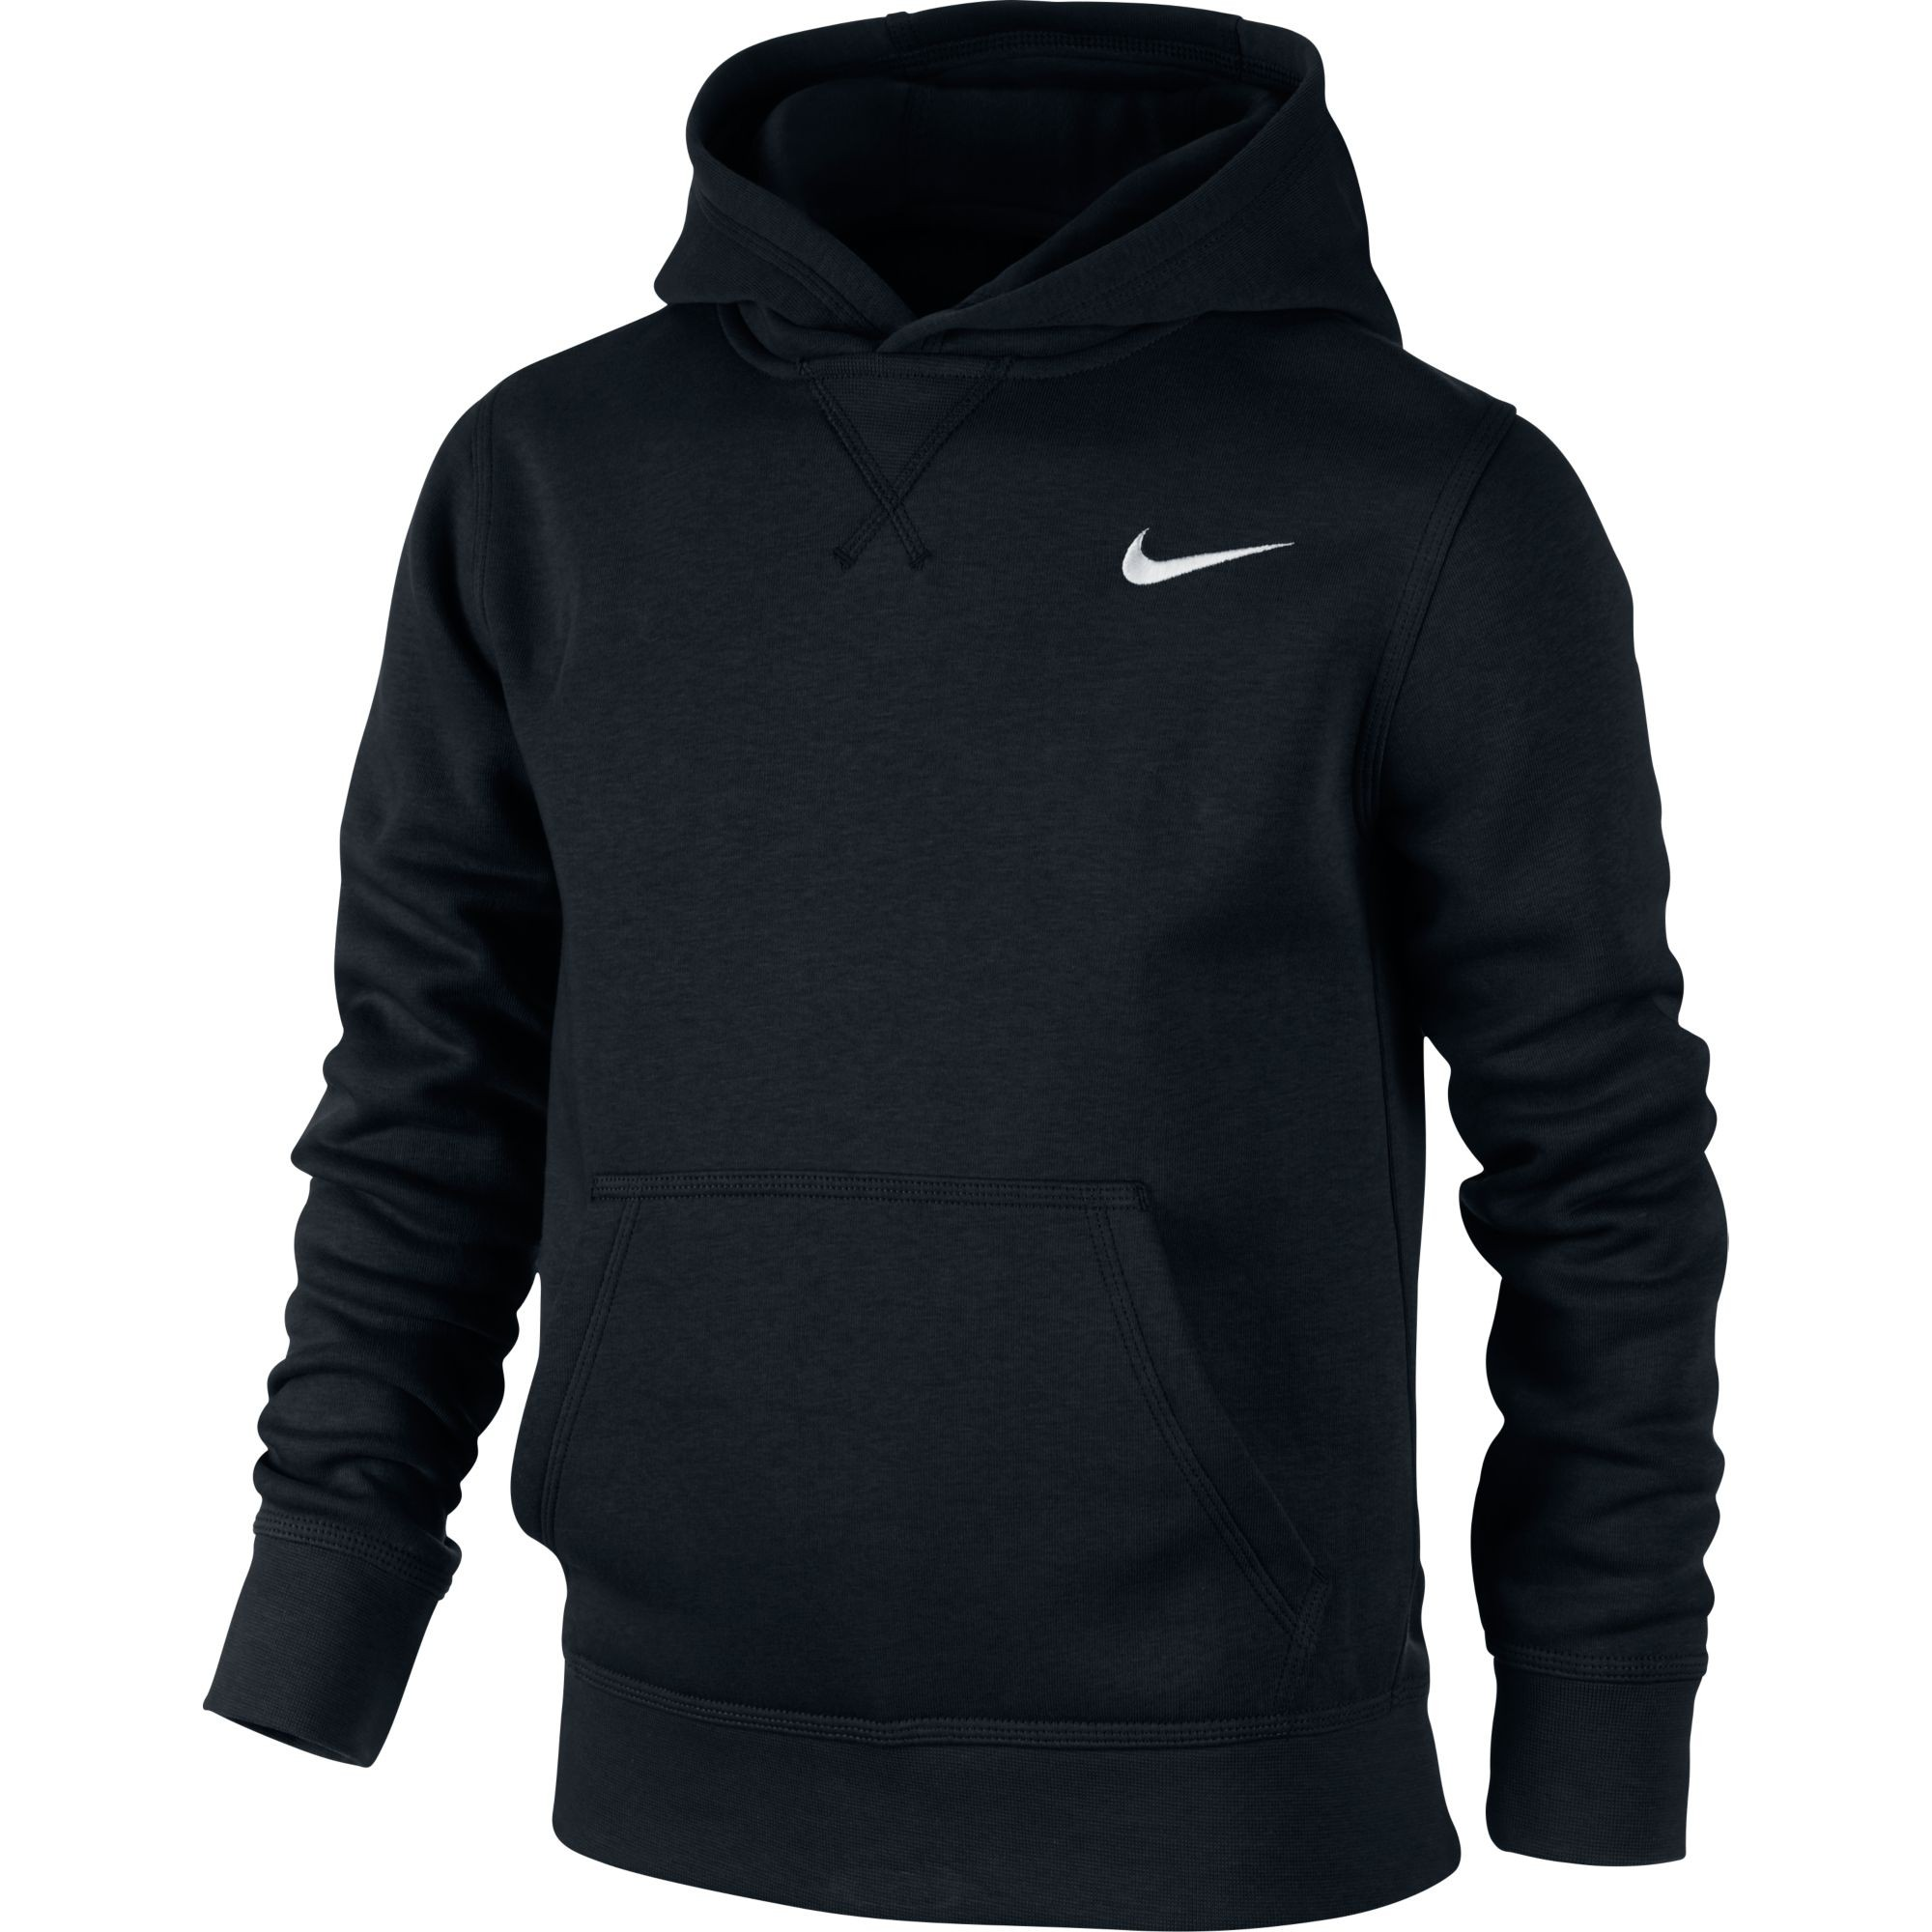 Fille Amp; D'hiver Chapka Vetement Doudoune Aeeqx6 Pull Nike Sx1wXtYw